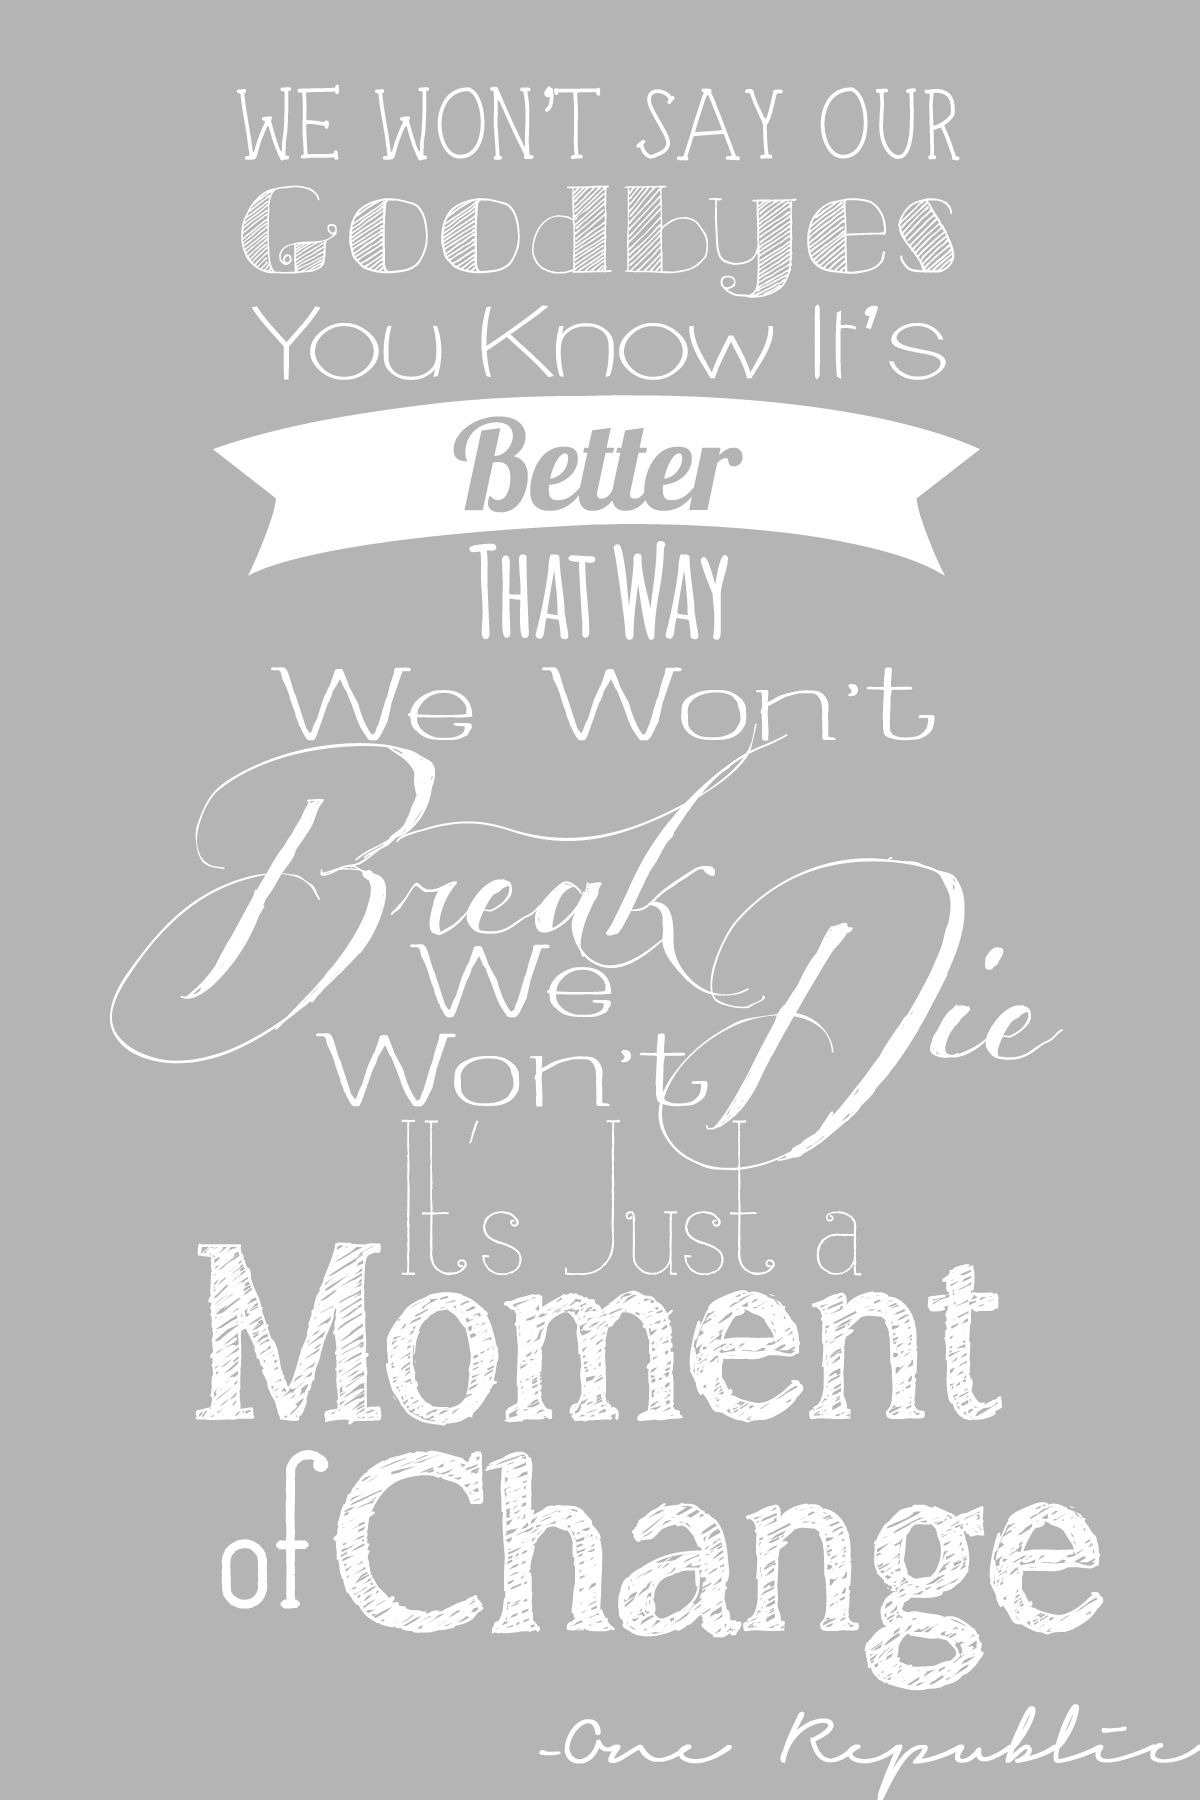 All We Are One Republic Lyrics Love This Onerepublic Is Da Bomb One Republic Lyrics Song Lyric Quotes Favorite Lyrics